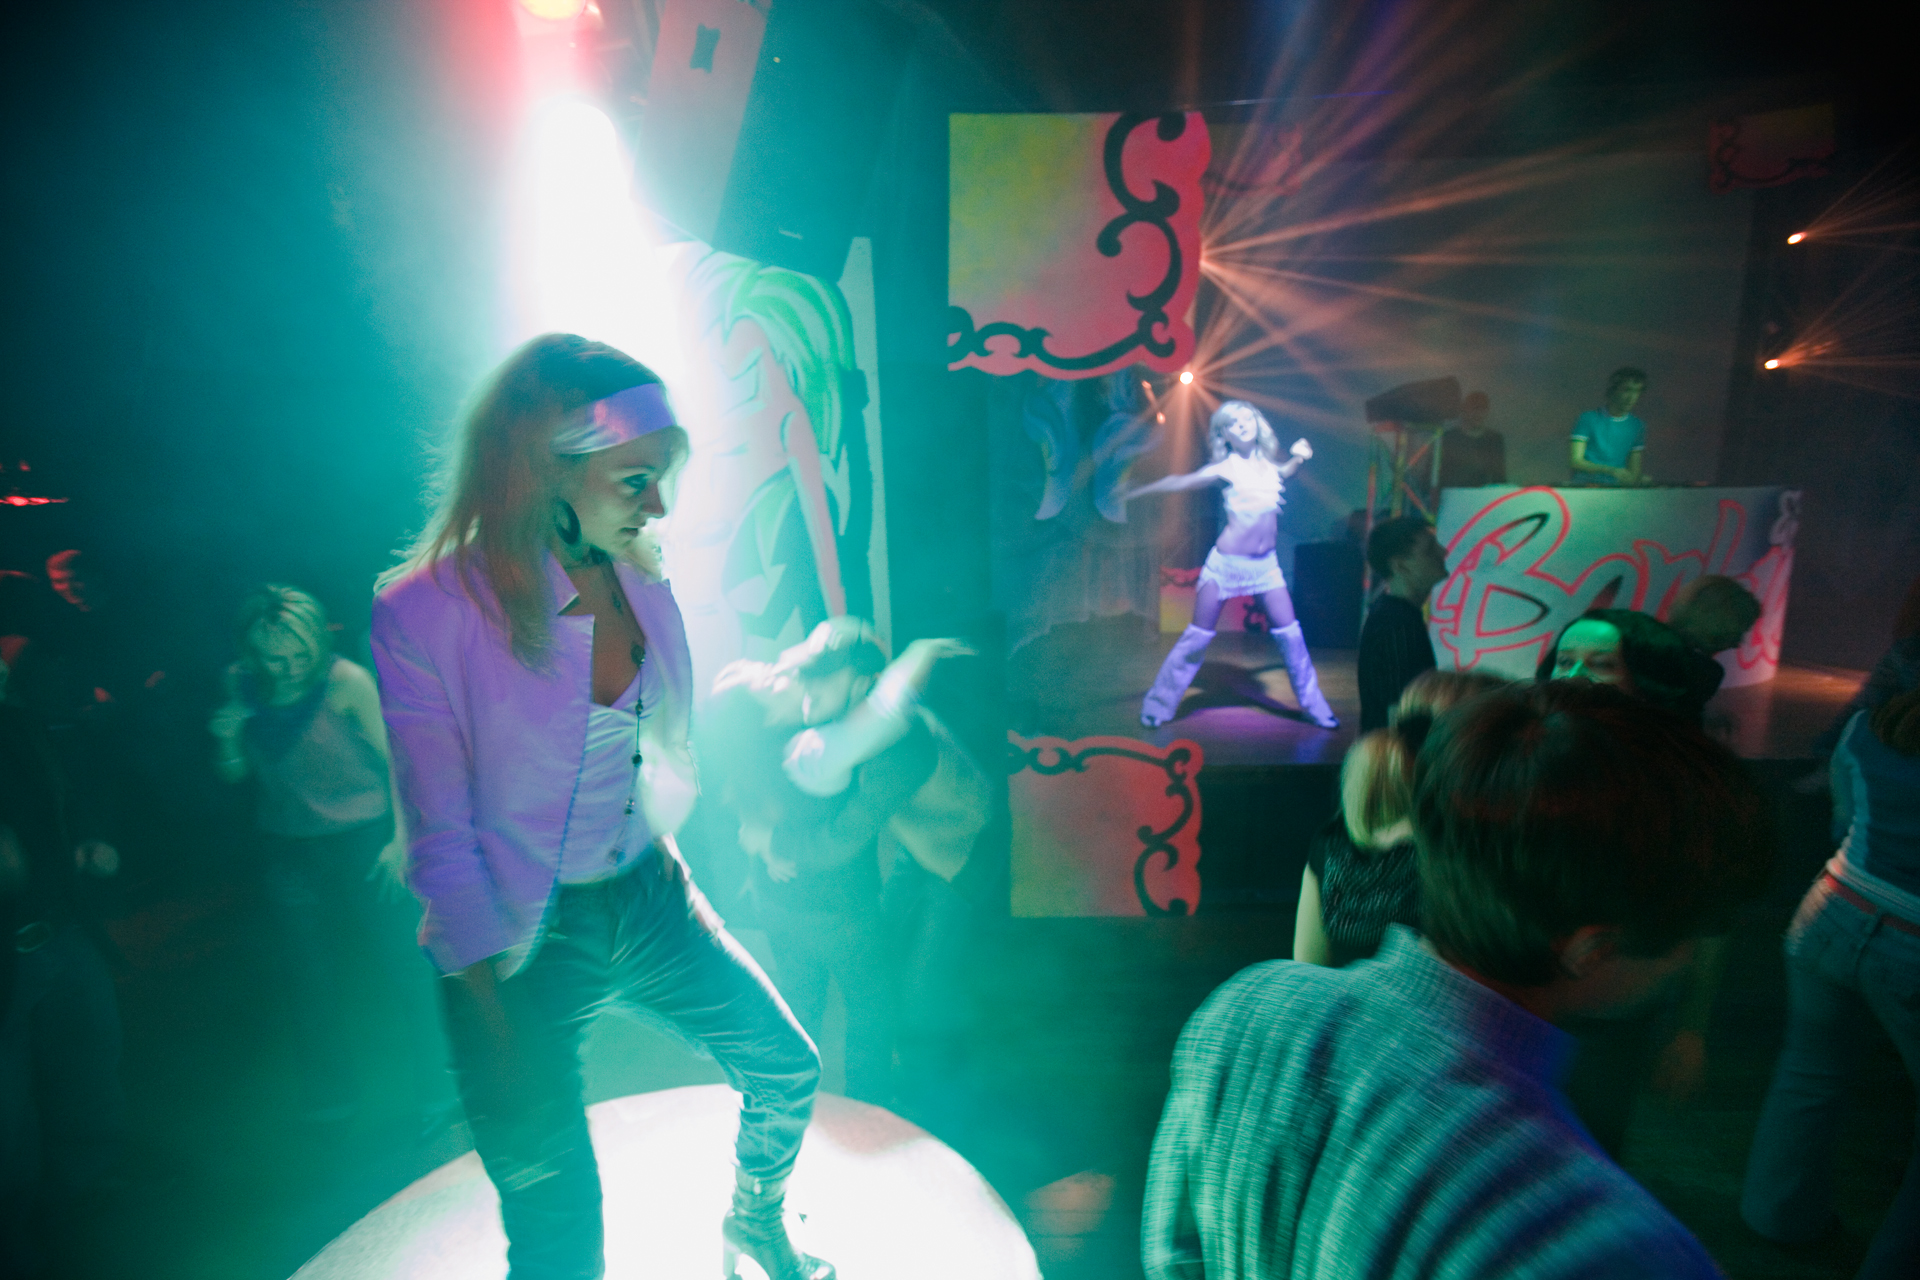 """The swagger of youth and new money keep the dance floor busy until dawn at the """"Champions' Territory"""" nightclub.  Khanty-Mansiysk, Russia"""